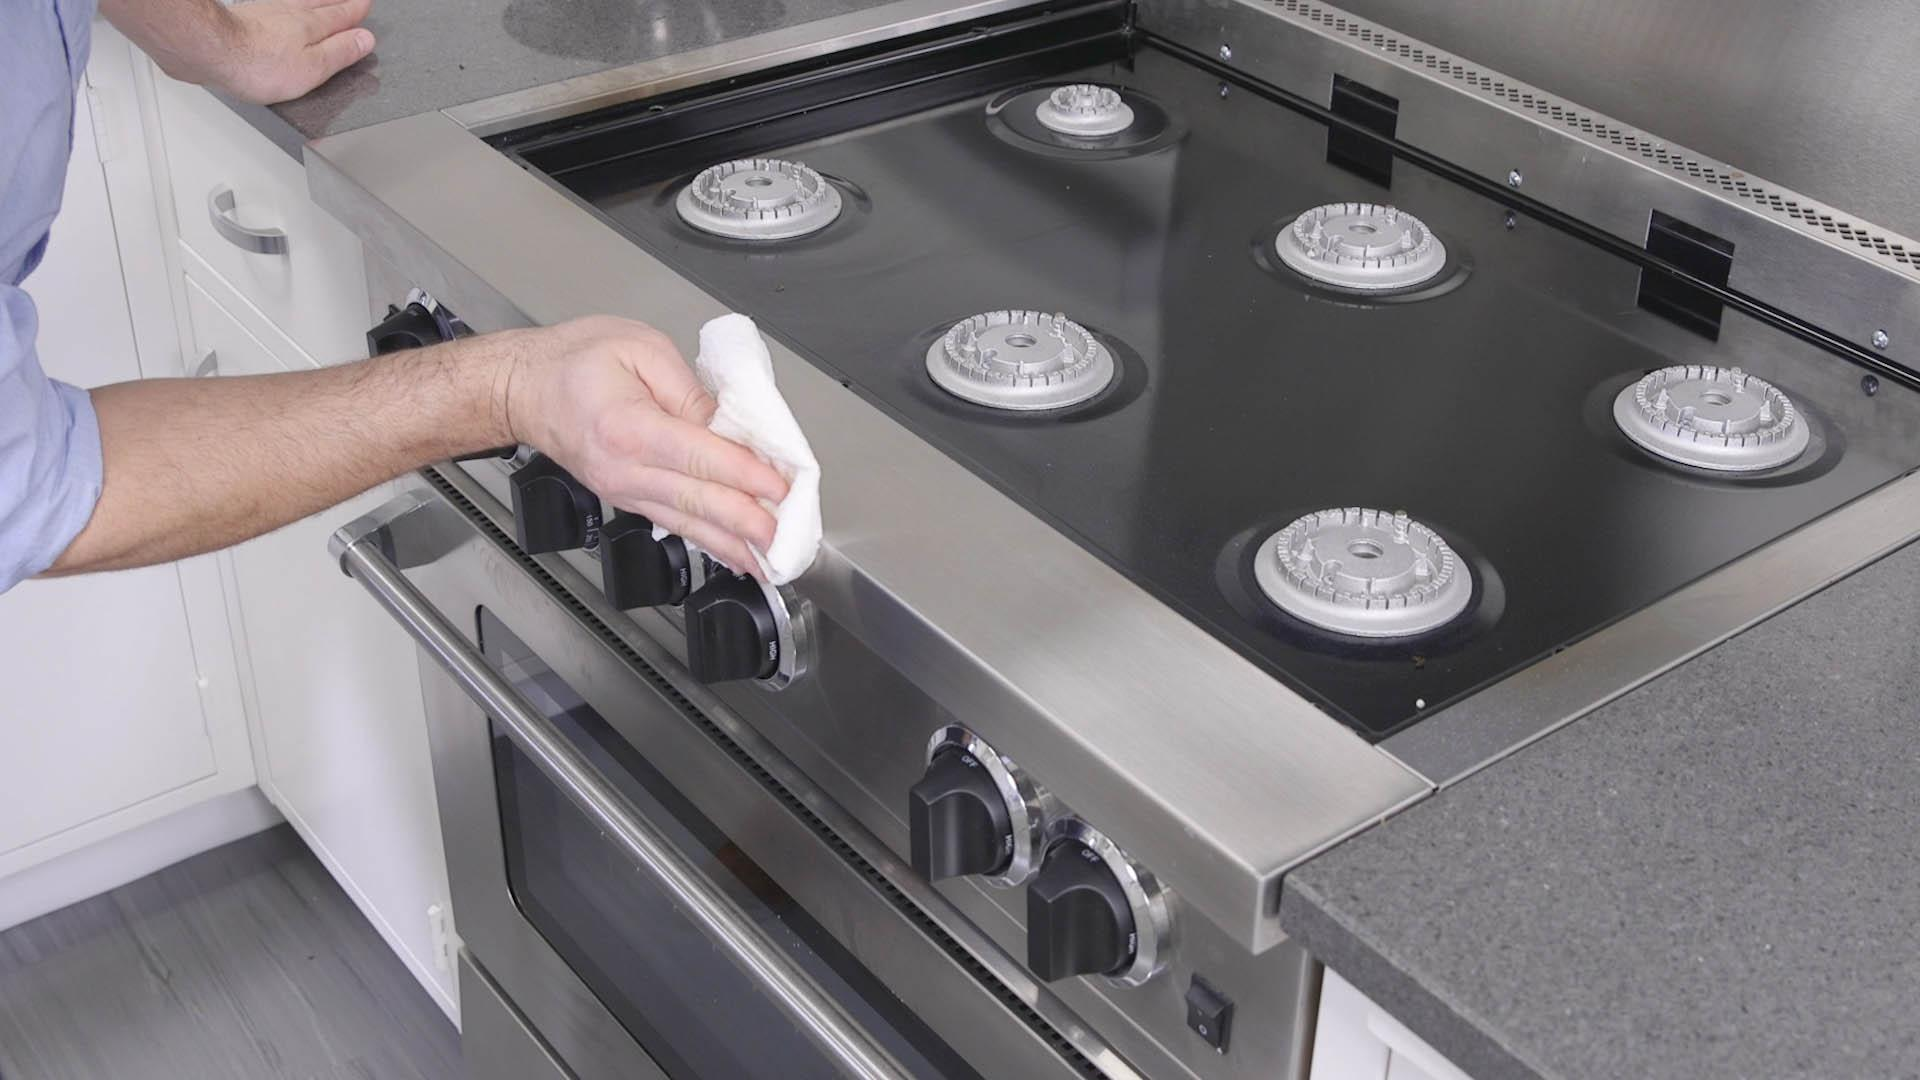 How To Clean A Dirty Oven And Grimy Stovetop Consumer Reports